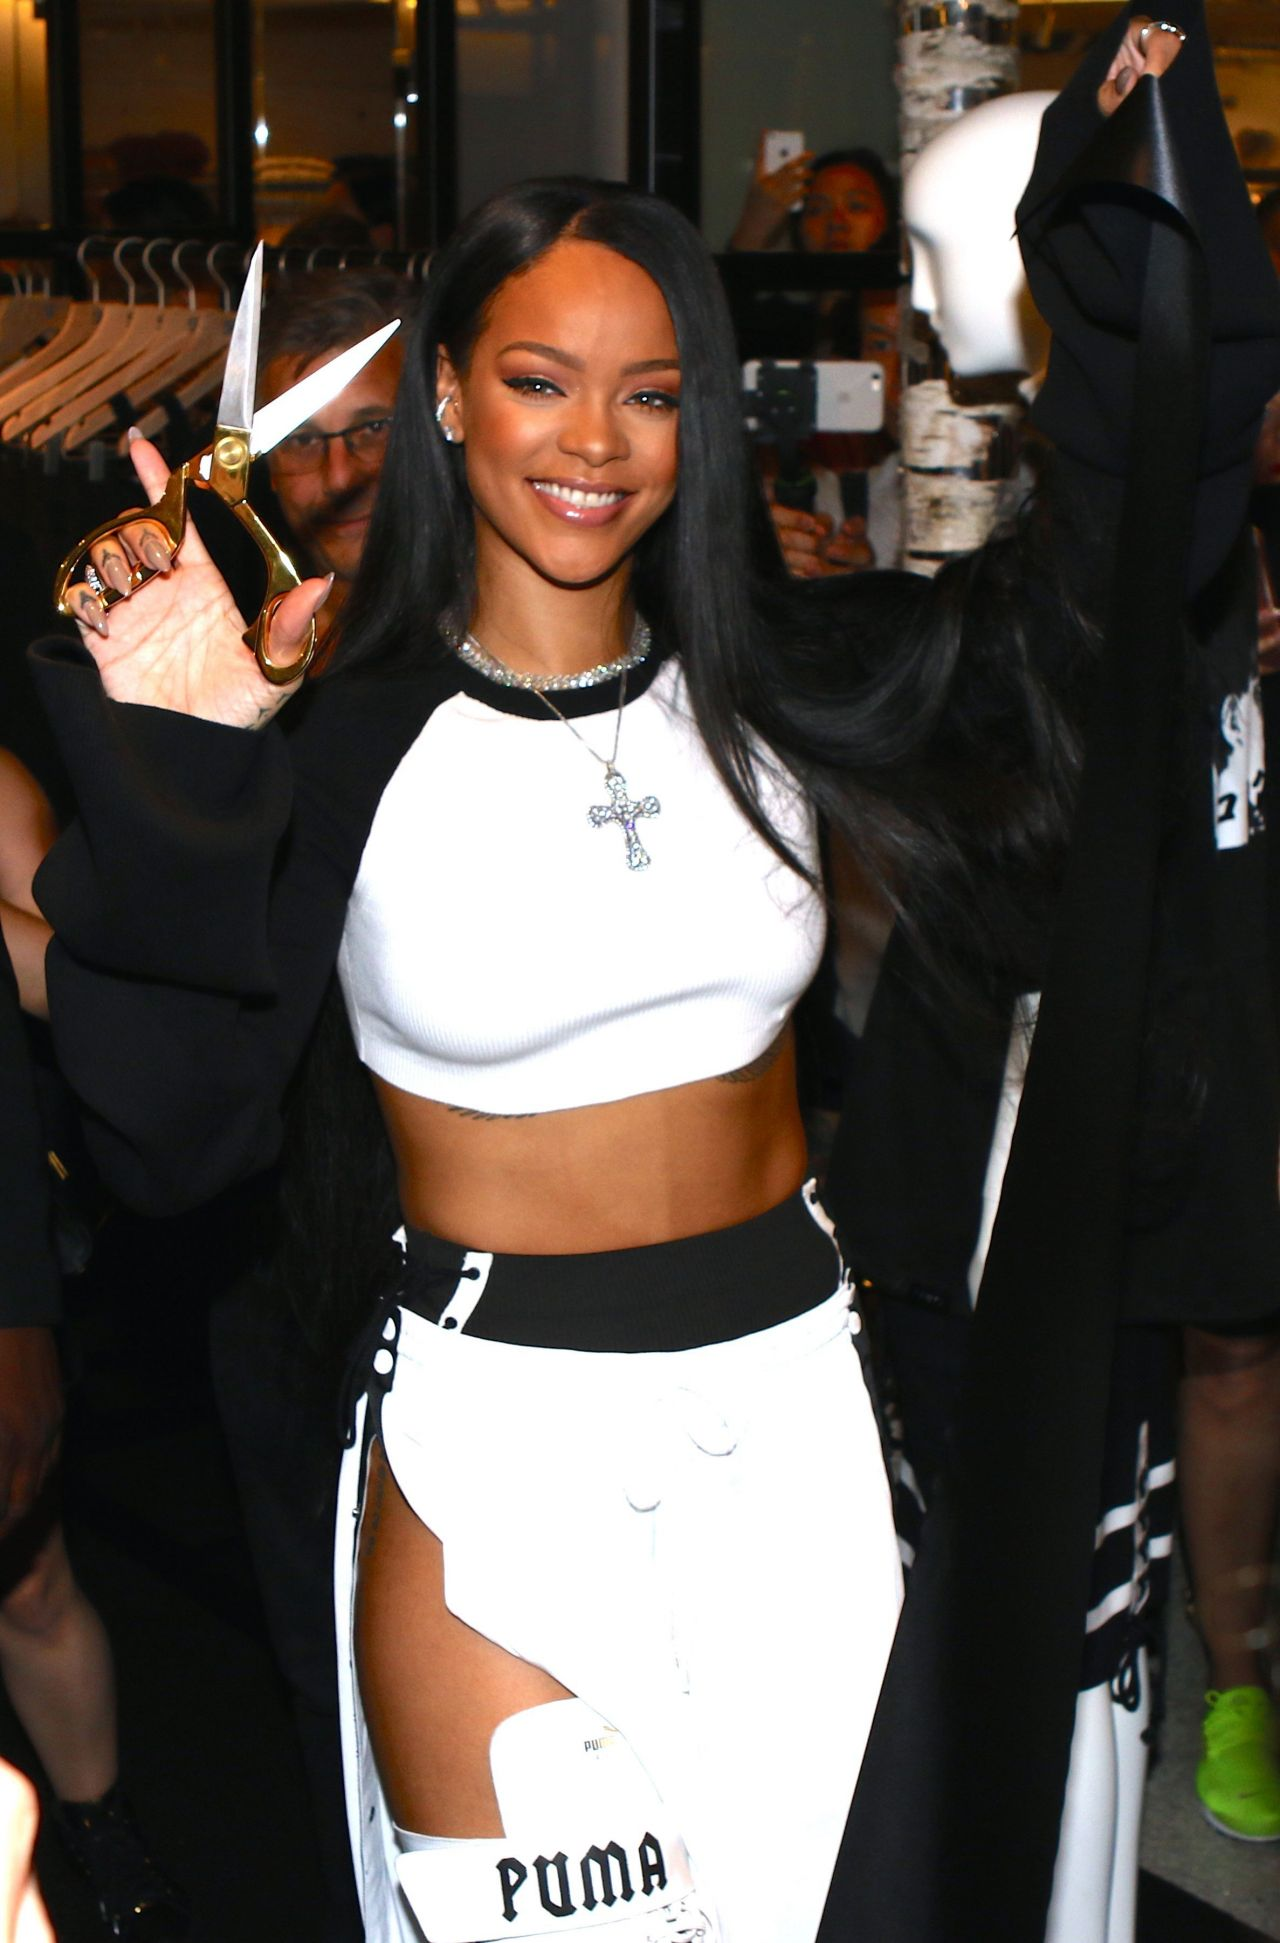 rihanna arrives for fenty puma x rihanna debut in nyc 9 6 2016. Black Bedroom Furniture Sets. Home Design Ideas